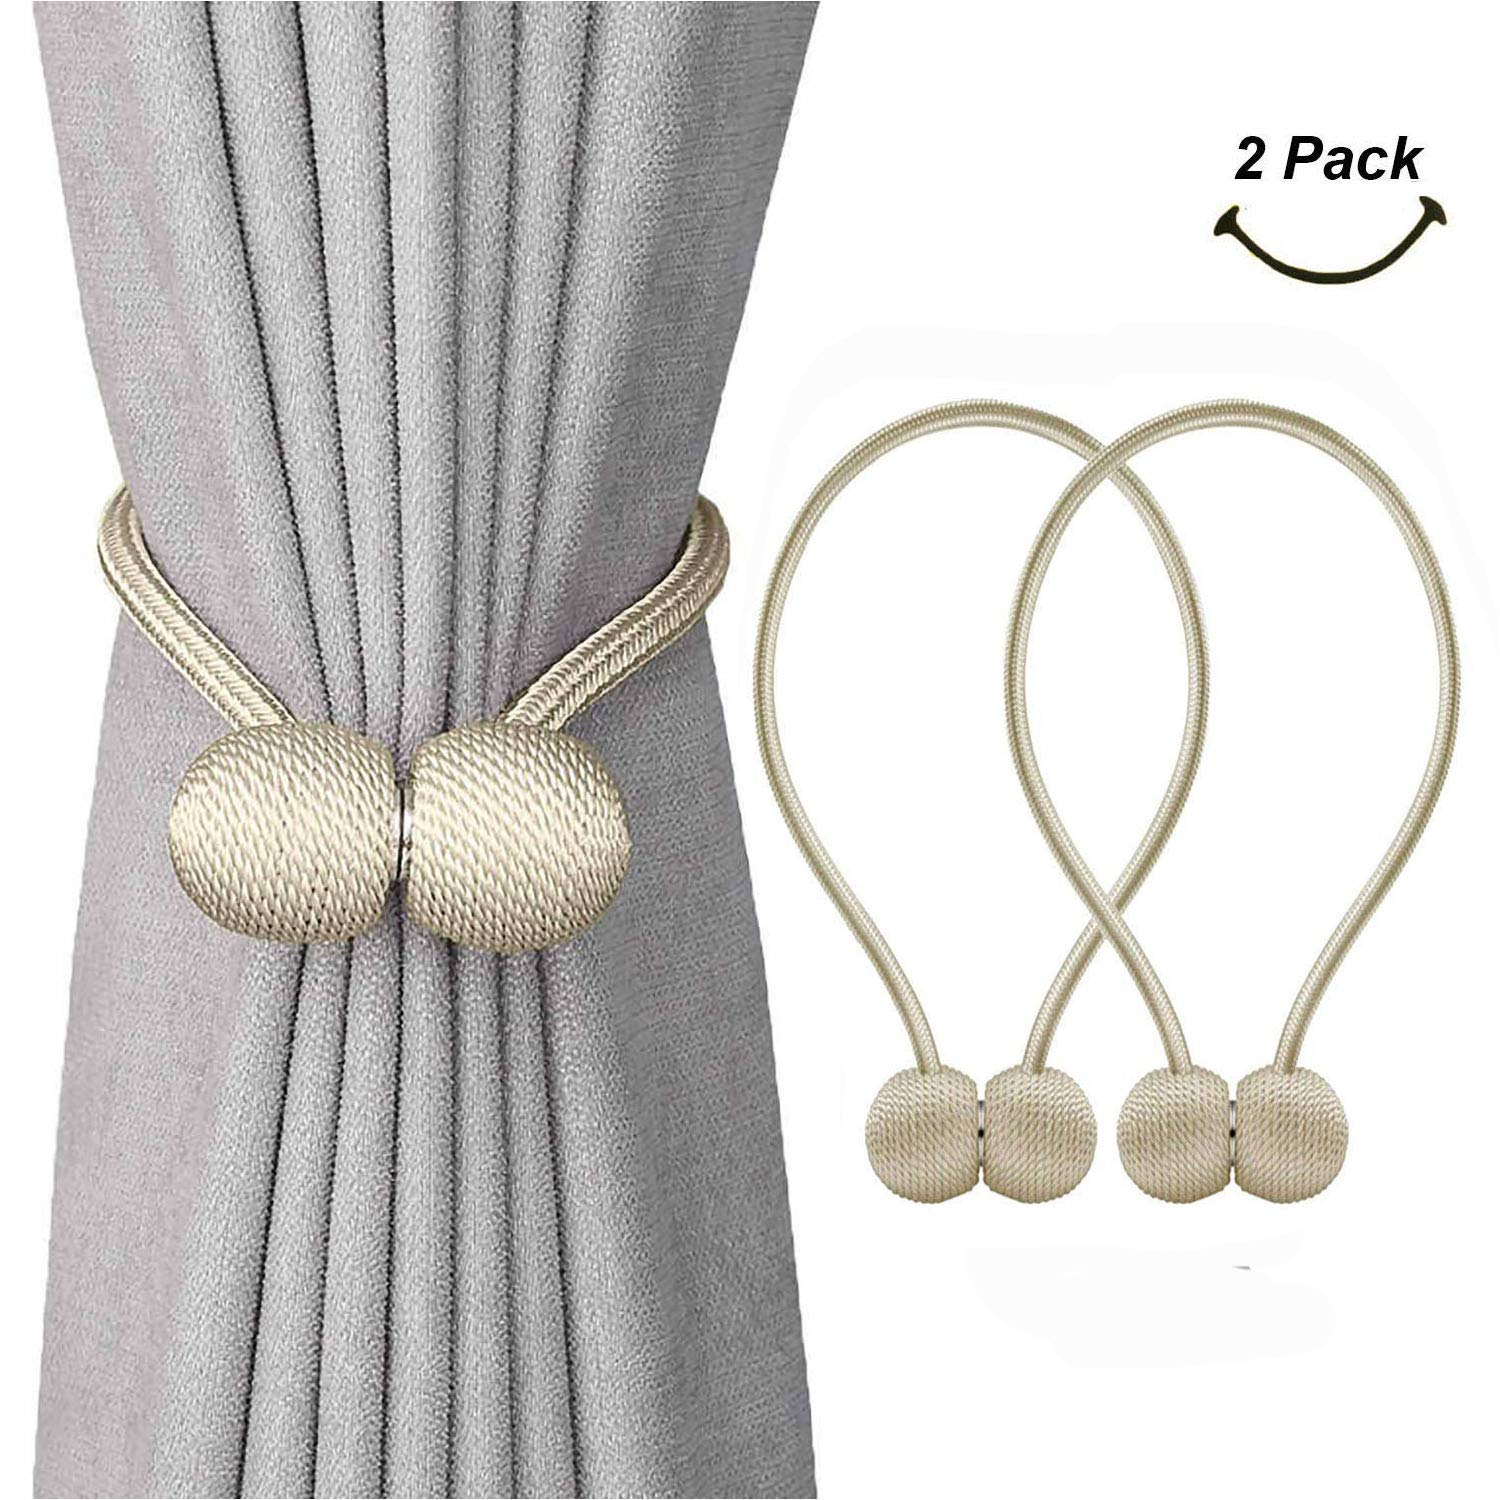 SmallDot Magnetic Curtain Tiebacks, 16 Inch Window Holdbacks Drapes Holders Hooks, Decorative Weave Rope Clips with Strong Magnet for Home Office Restaurant Décor, Pack of 2, Beige